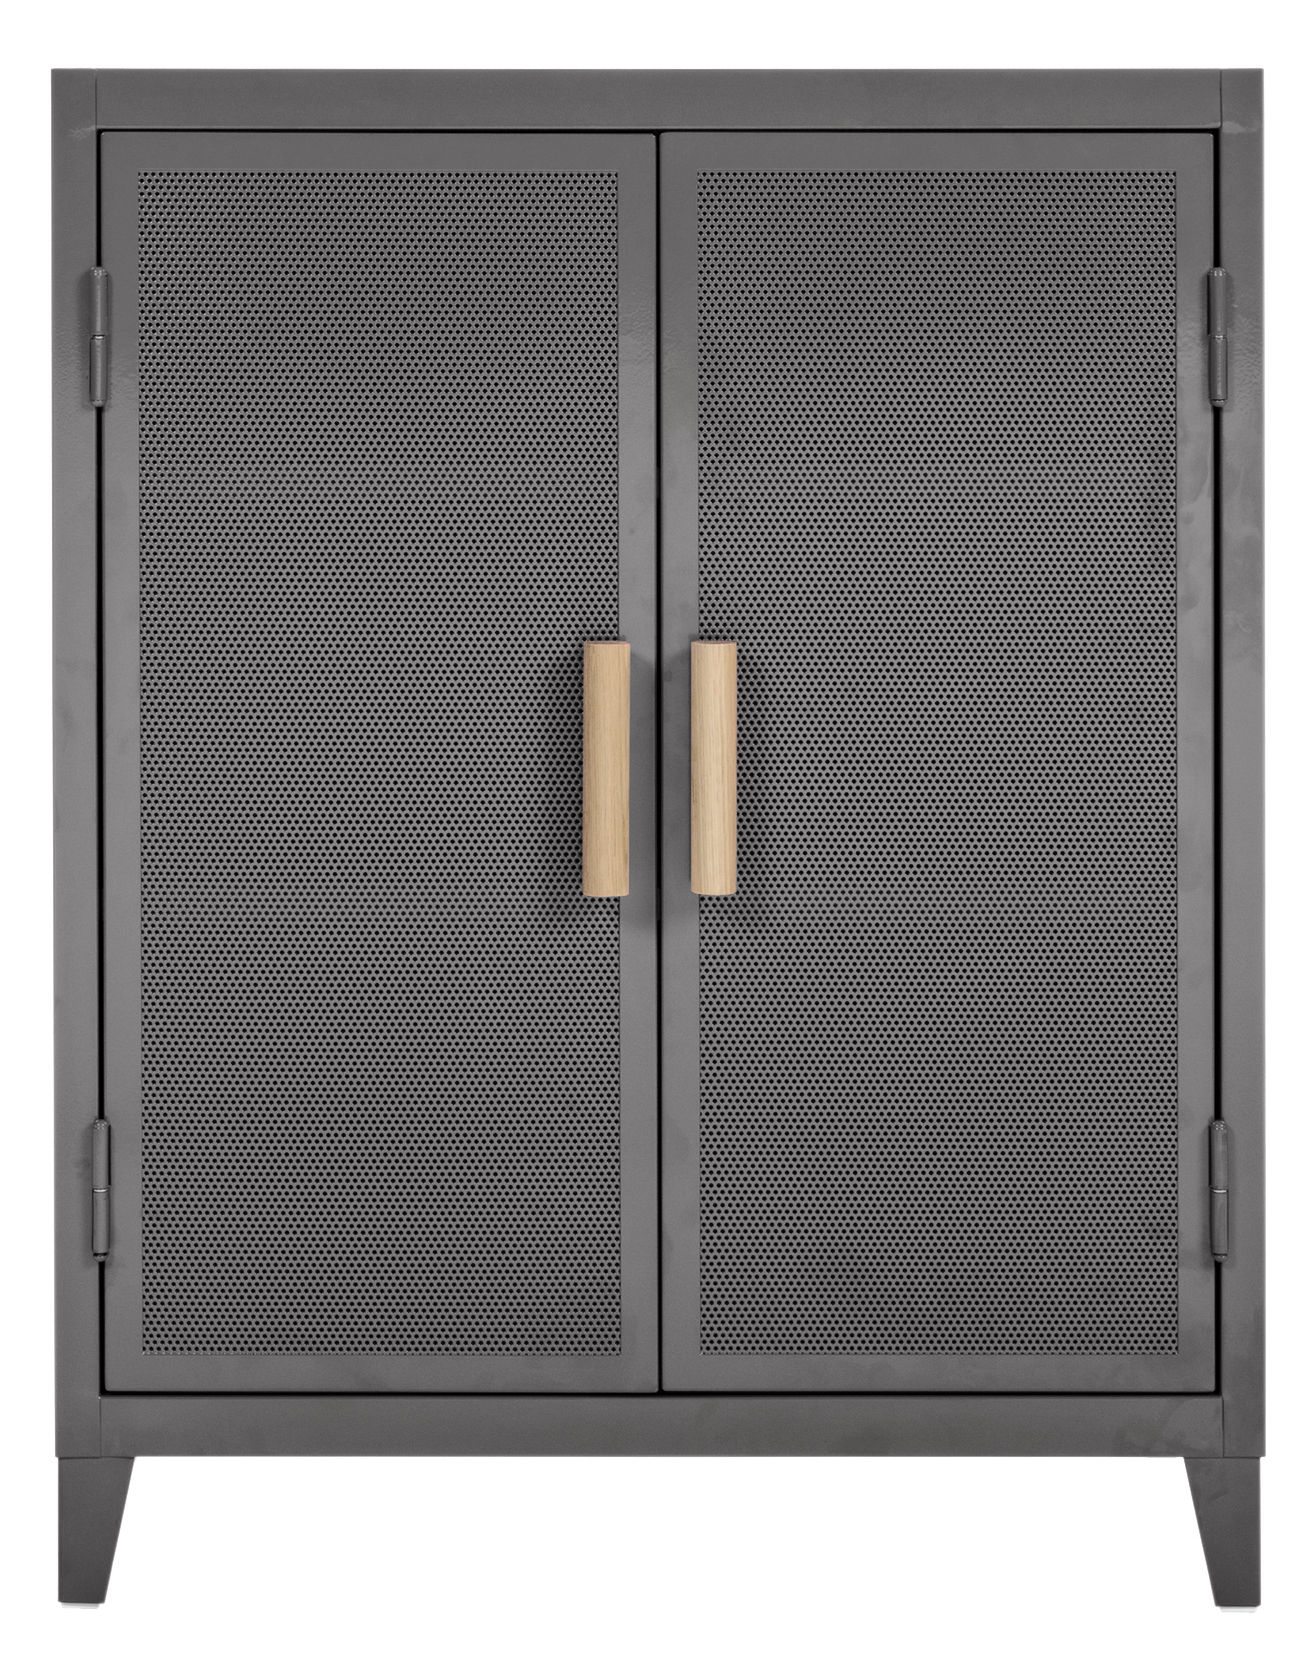 Furniture - Shelves & Storage Furniture - Vestiaire bas Perforé Storage - 2 doors by Tolix - Mouse grey - Lacquered steel, Solid oak